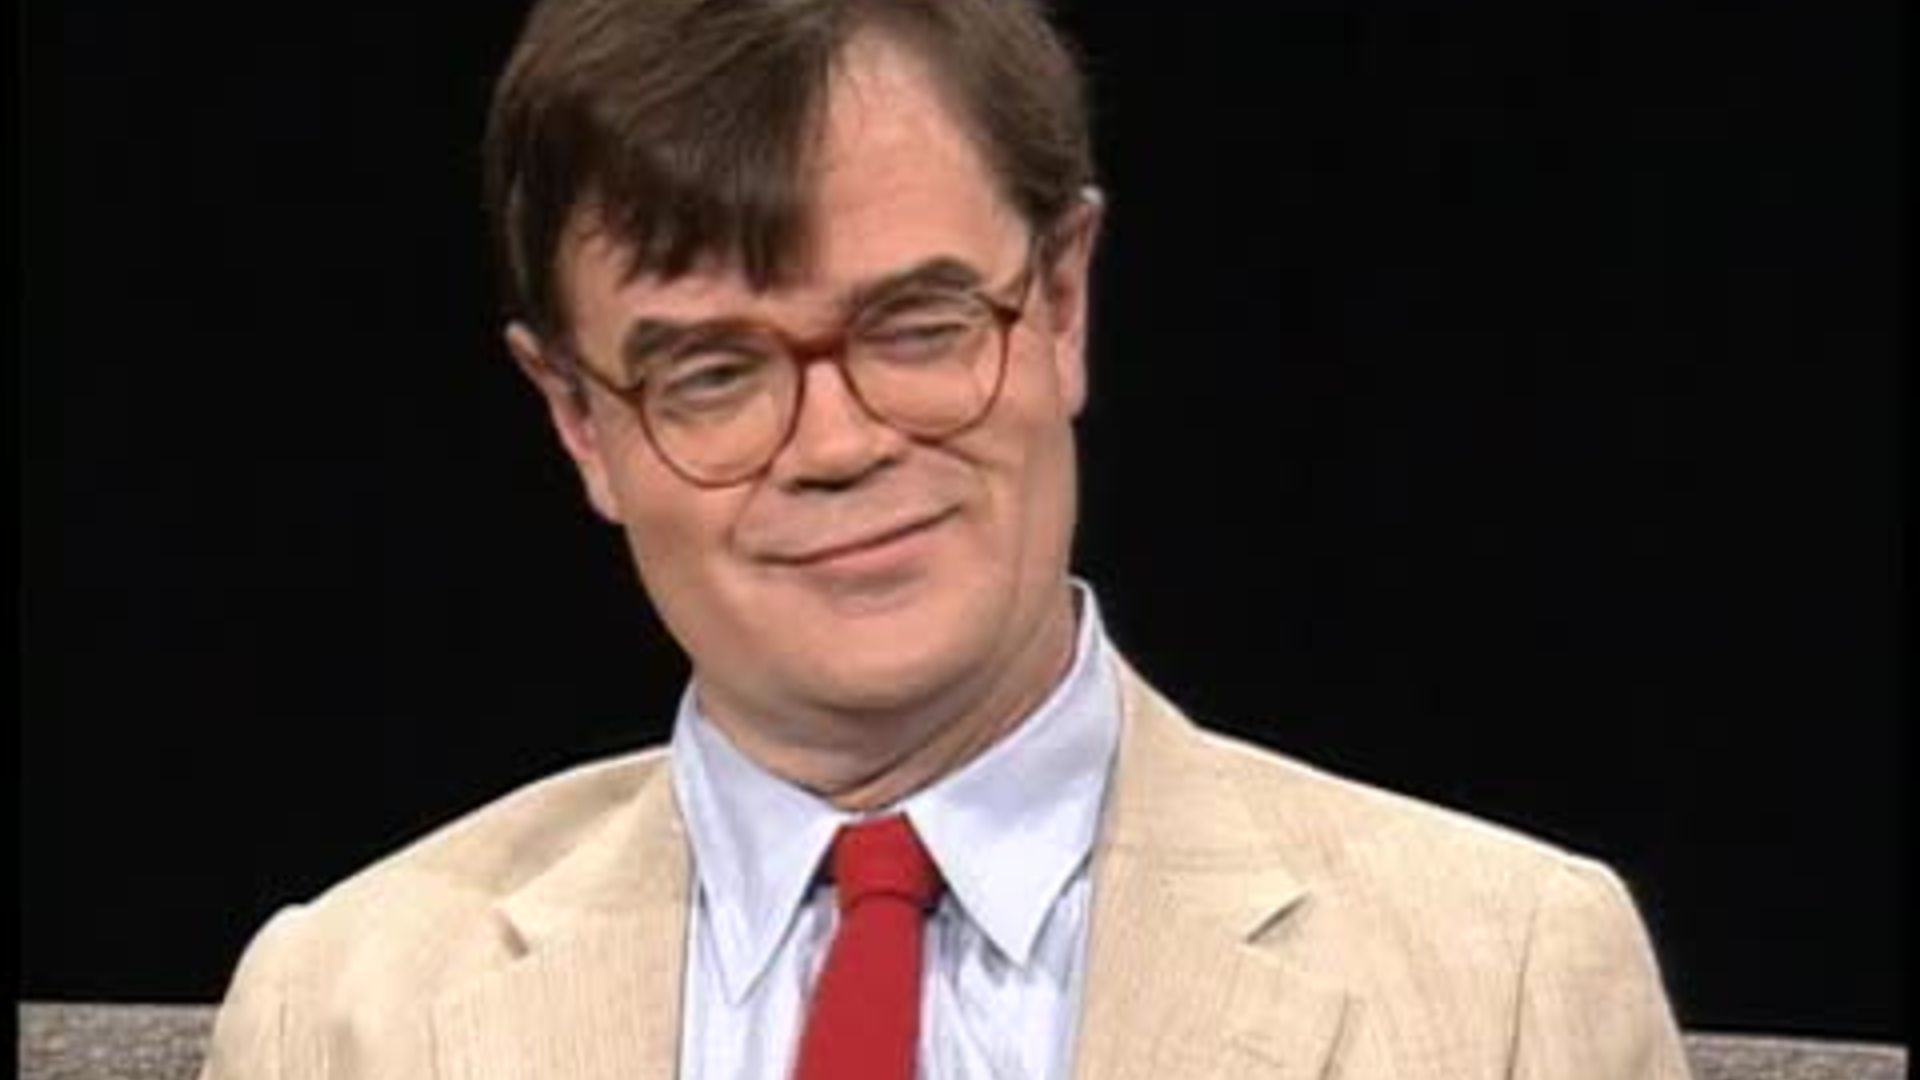 garrison keillor thesis university Former radio host garrison keillor was removed from the university of minnesota's scholars walk following a recent sexual harassment scandal scholars walk, which honors outstanding.